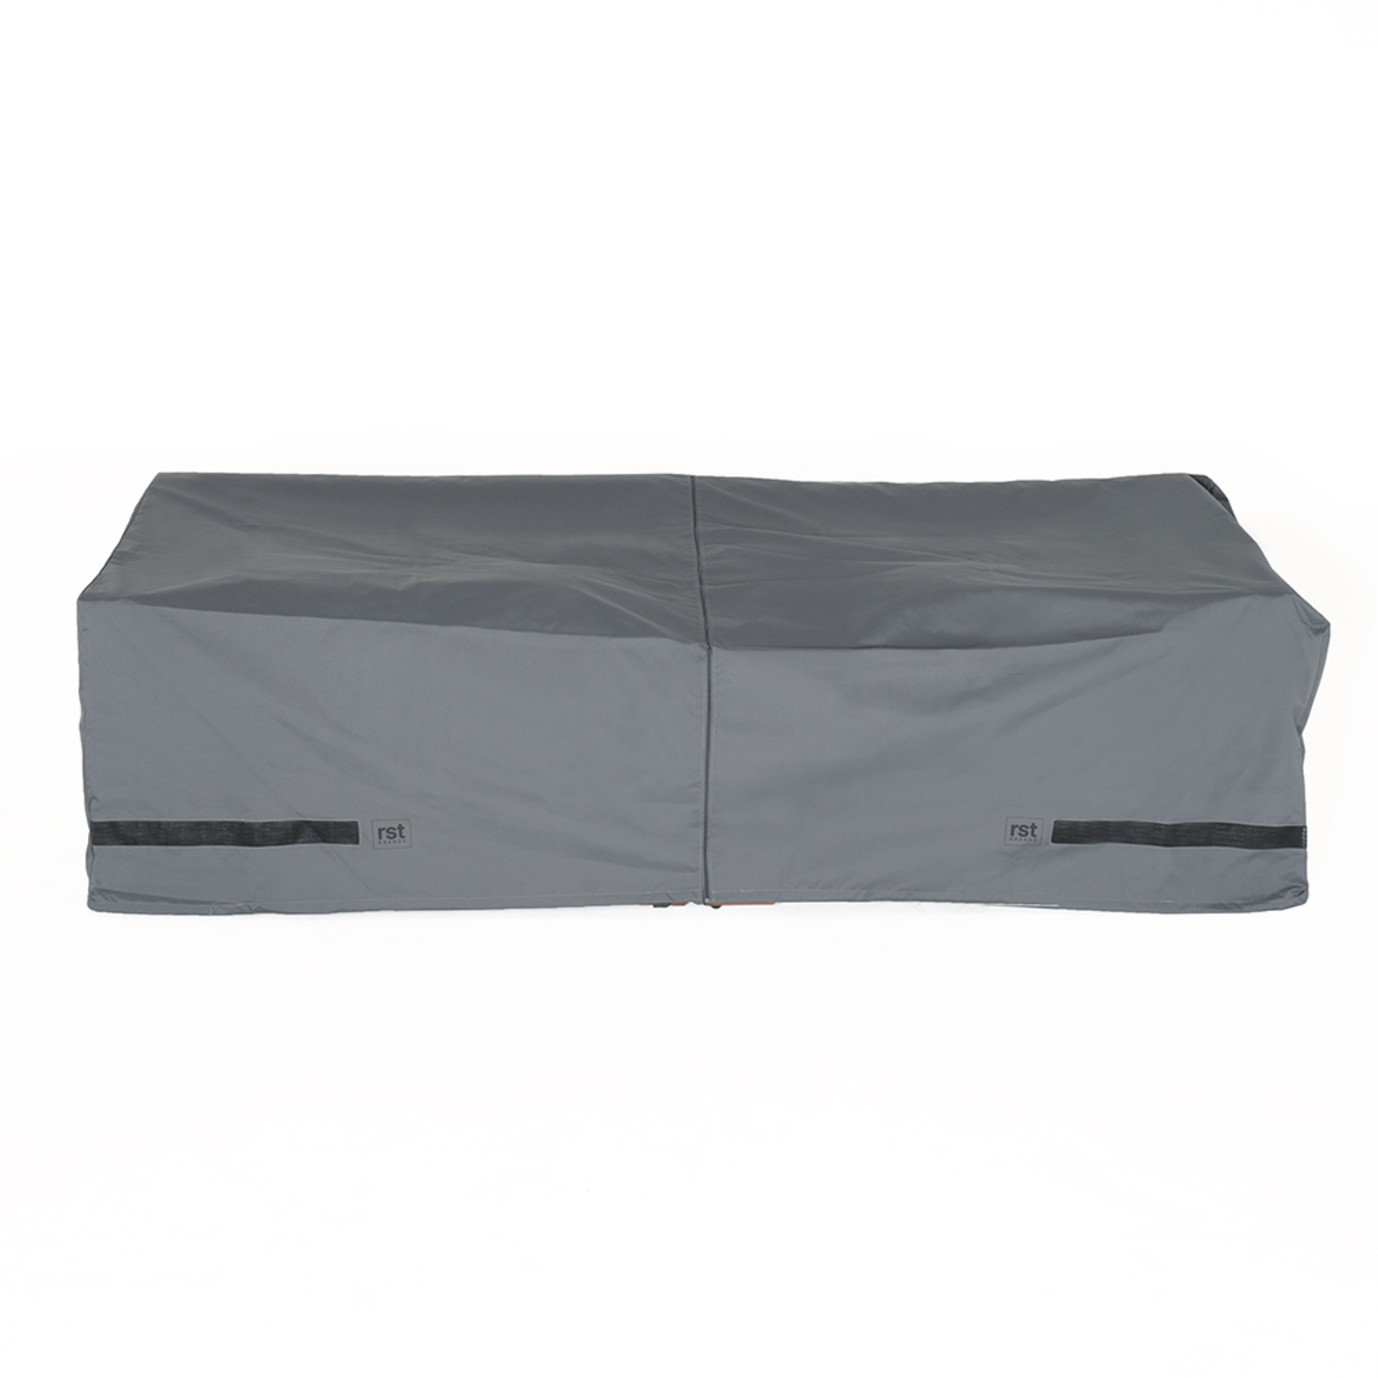 Resort™ Furniture Cover - 2 Piece 96in Sofa